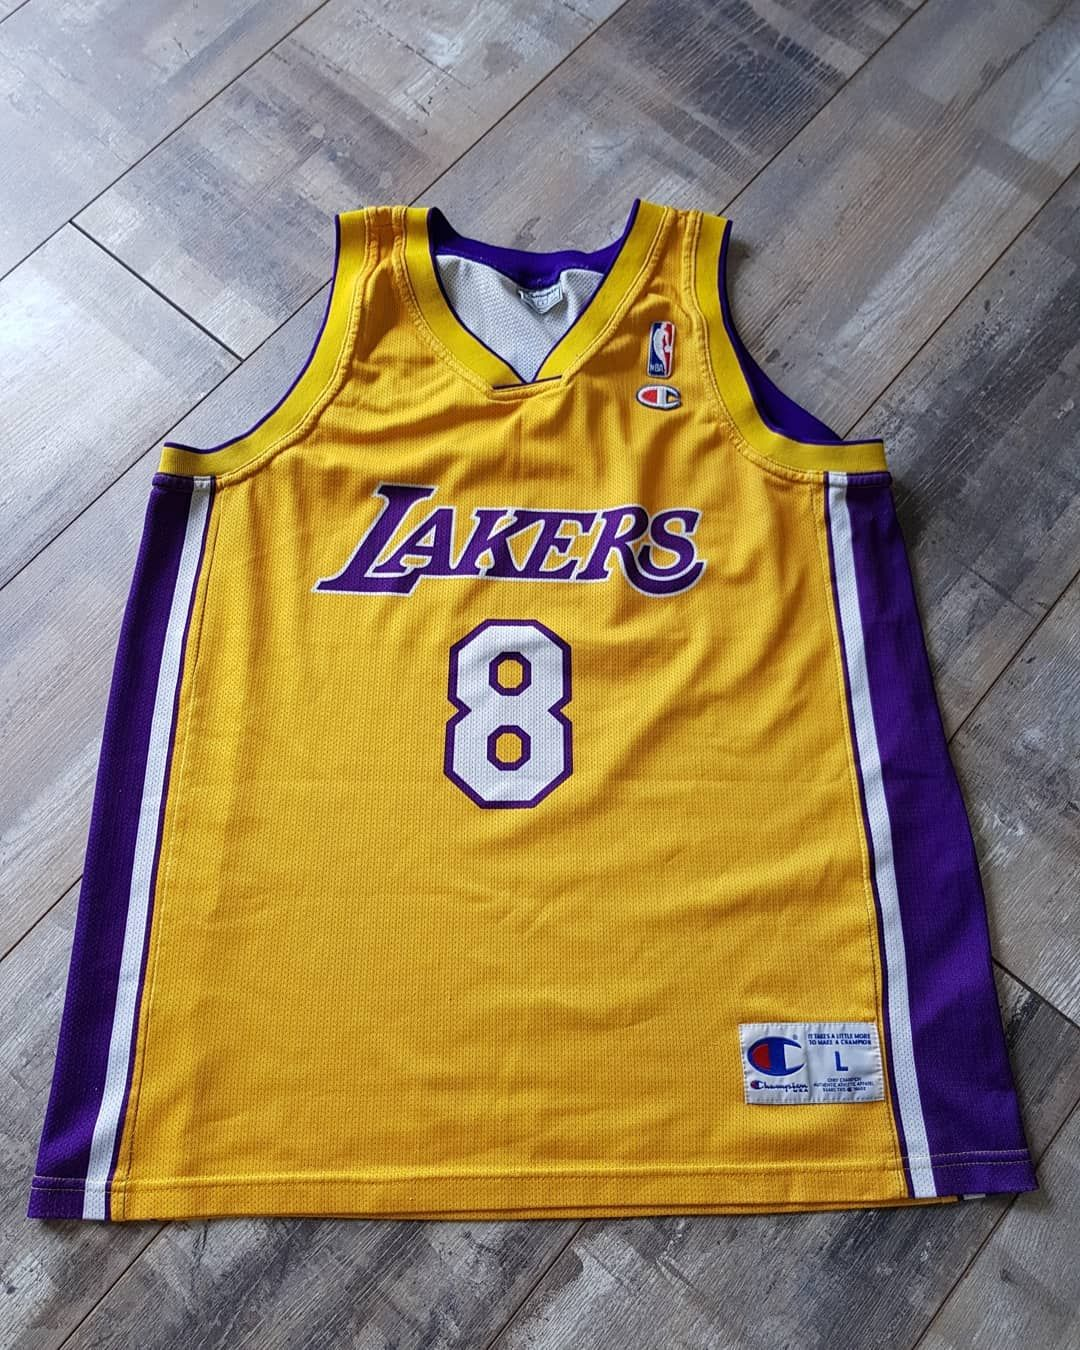 newest a261c e7371 Kobe Bryant Los Angeles Lakers Jersey Size Large. £35 + ...